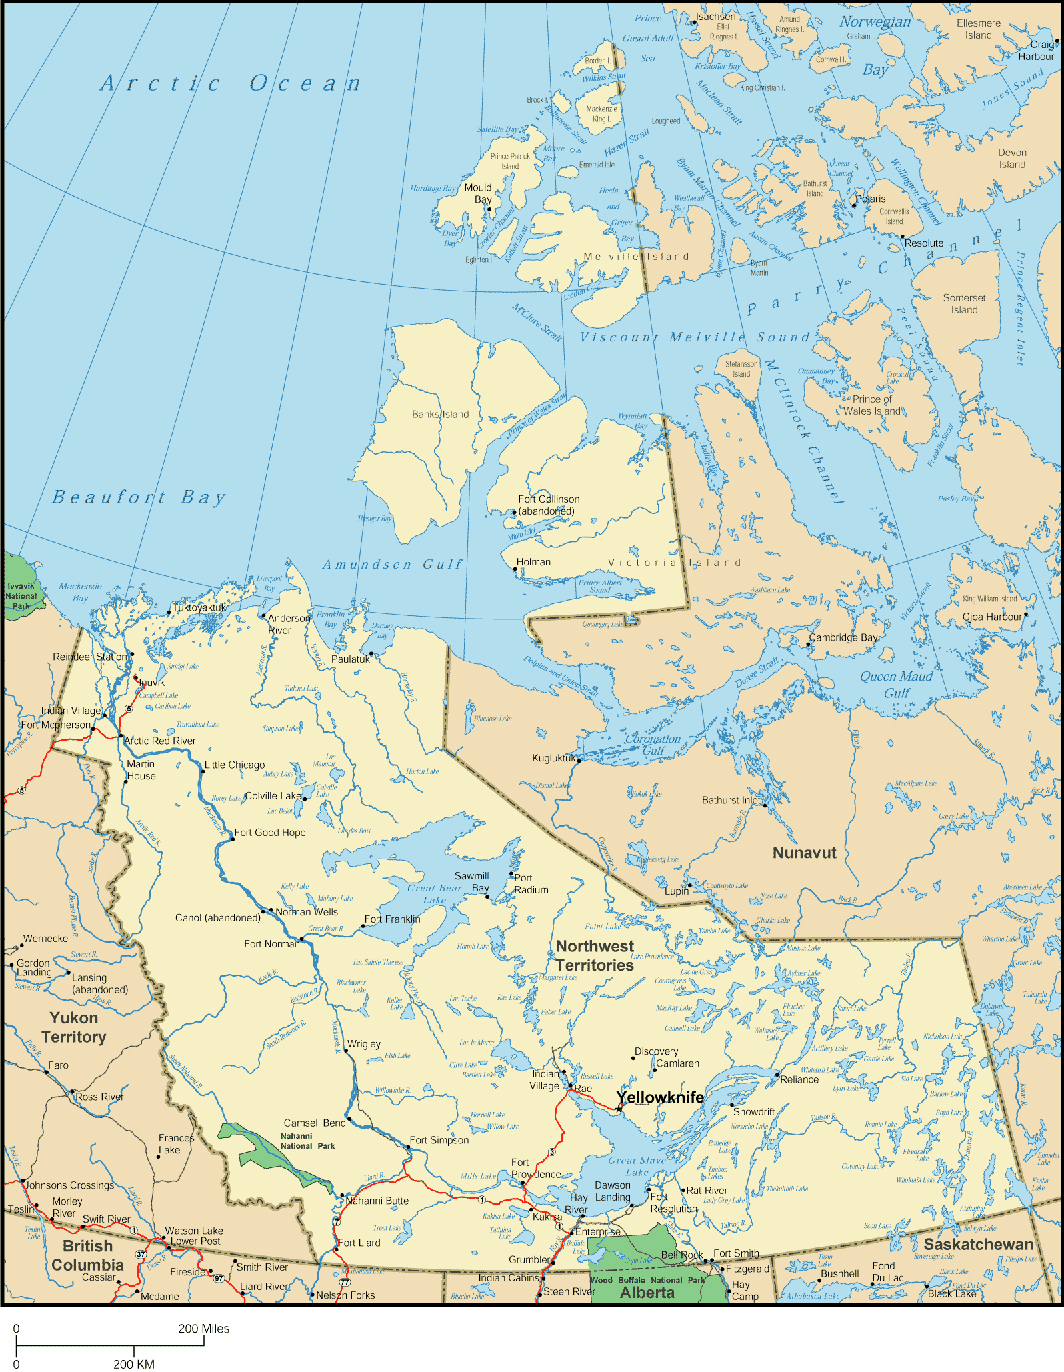 Northwest Territories Canada Map.Photoscanada Com Gallery Northwest Territories Photos Stock